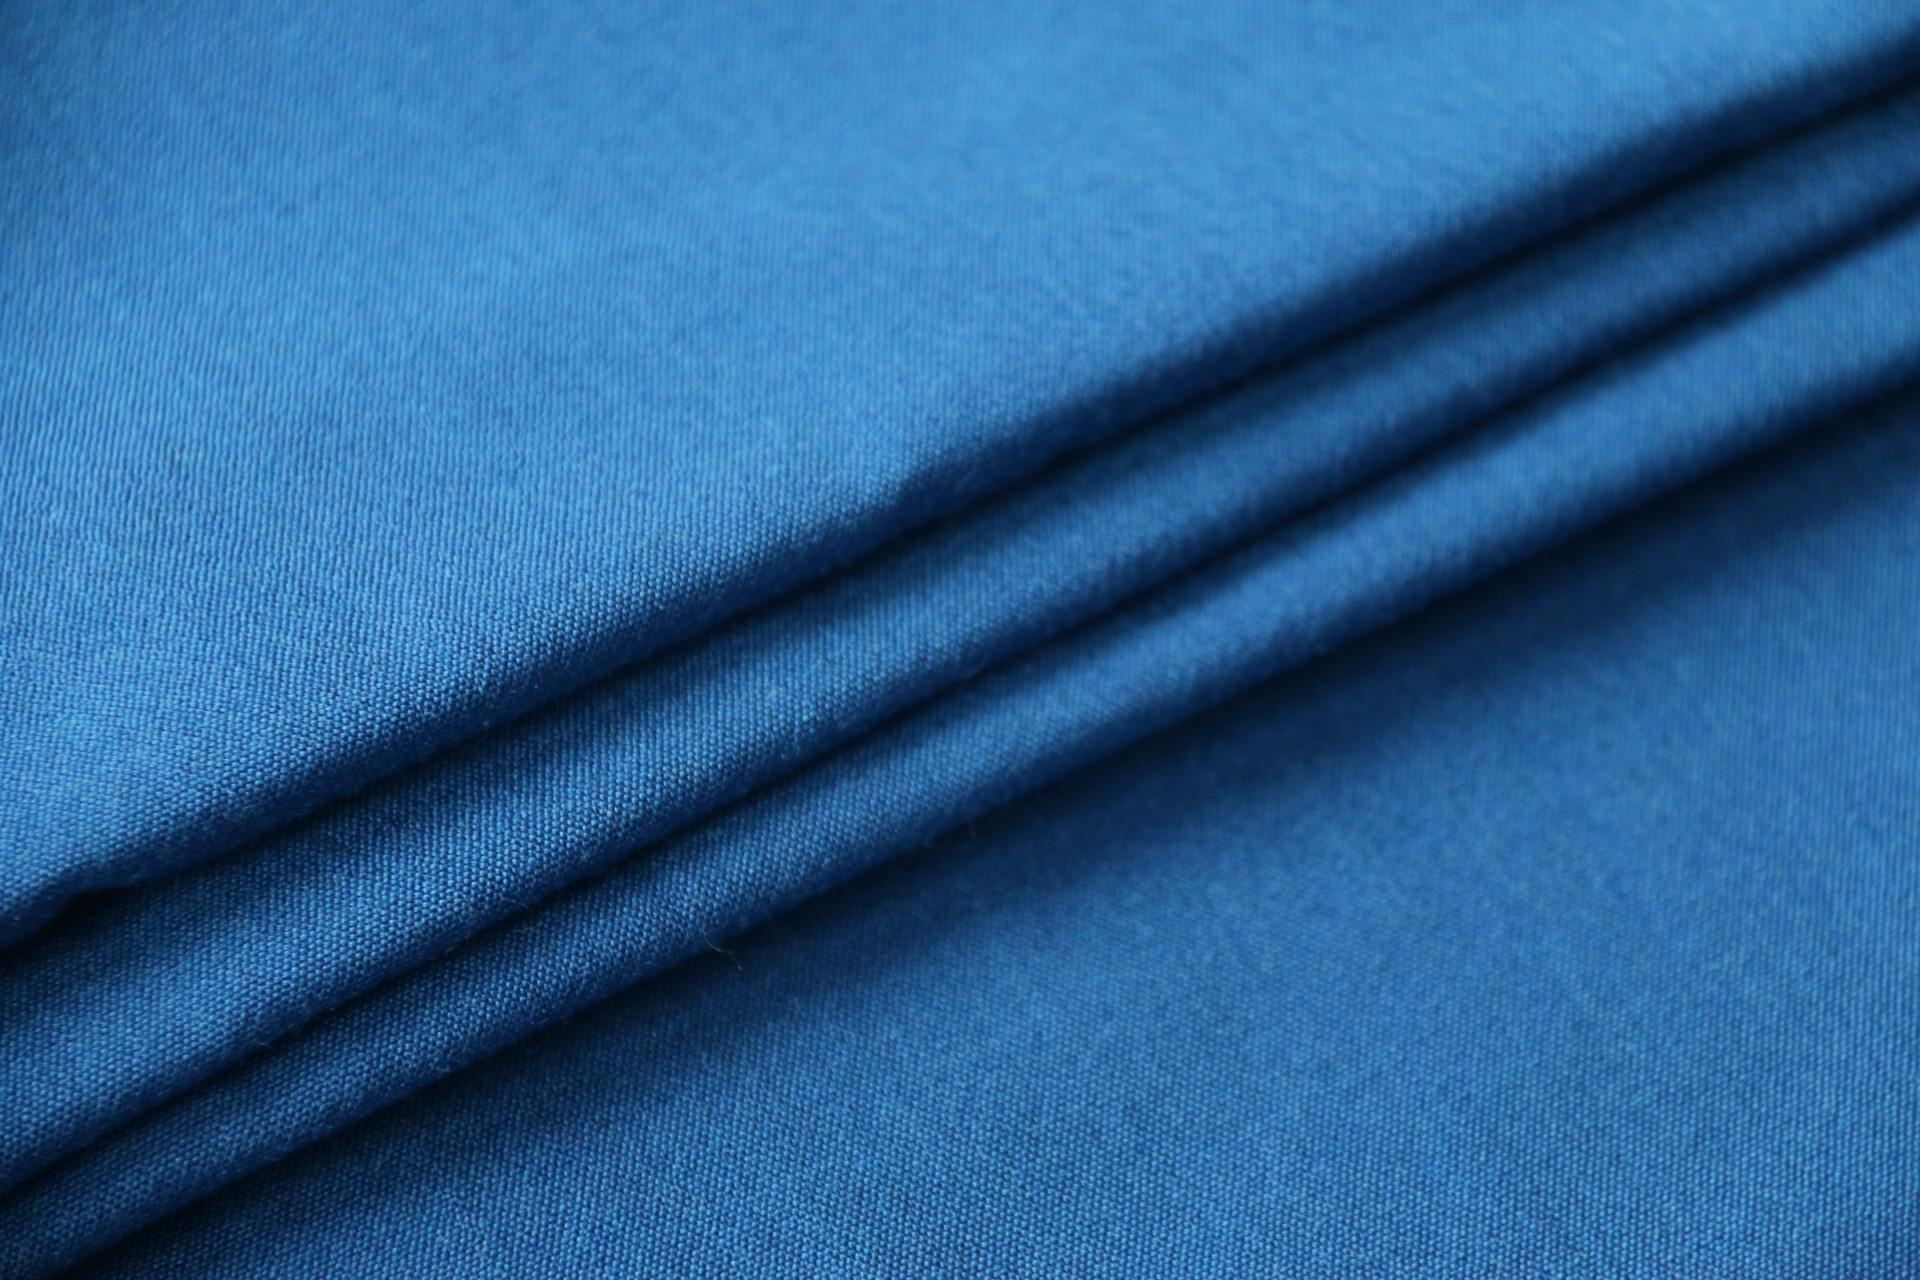 Characteristics of aramid flame retardant fabric